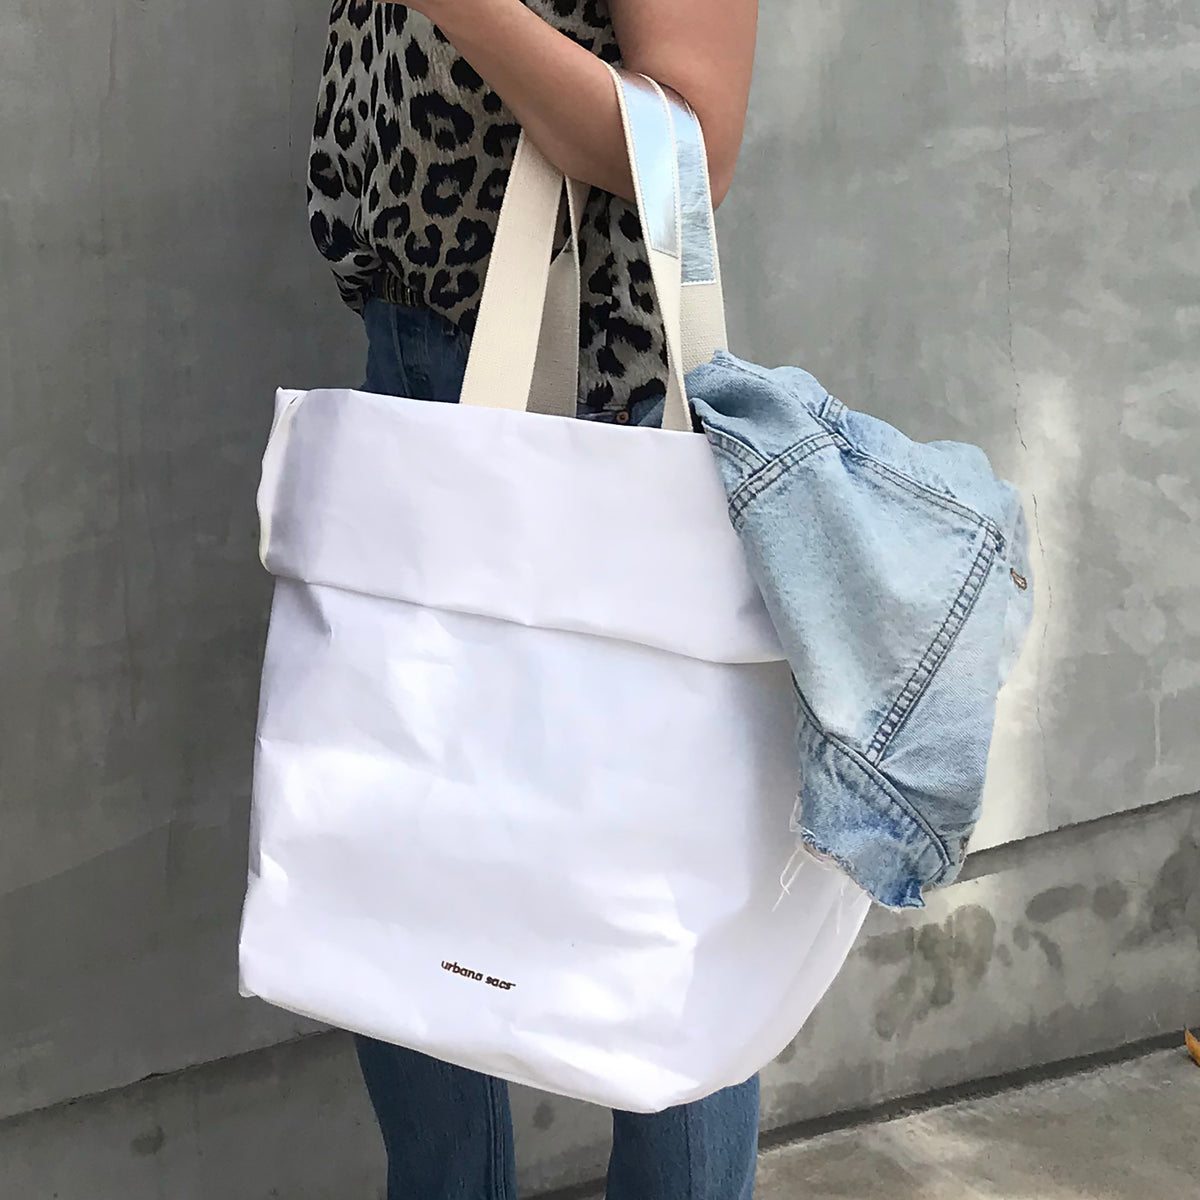 Carry-all Sac with Two Cotton Straps